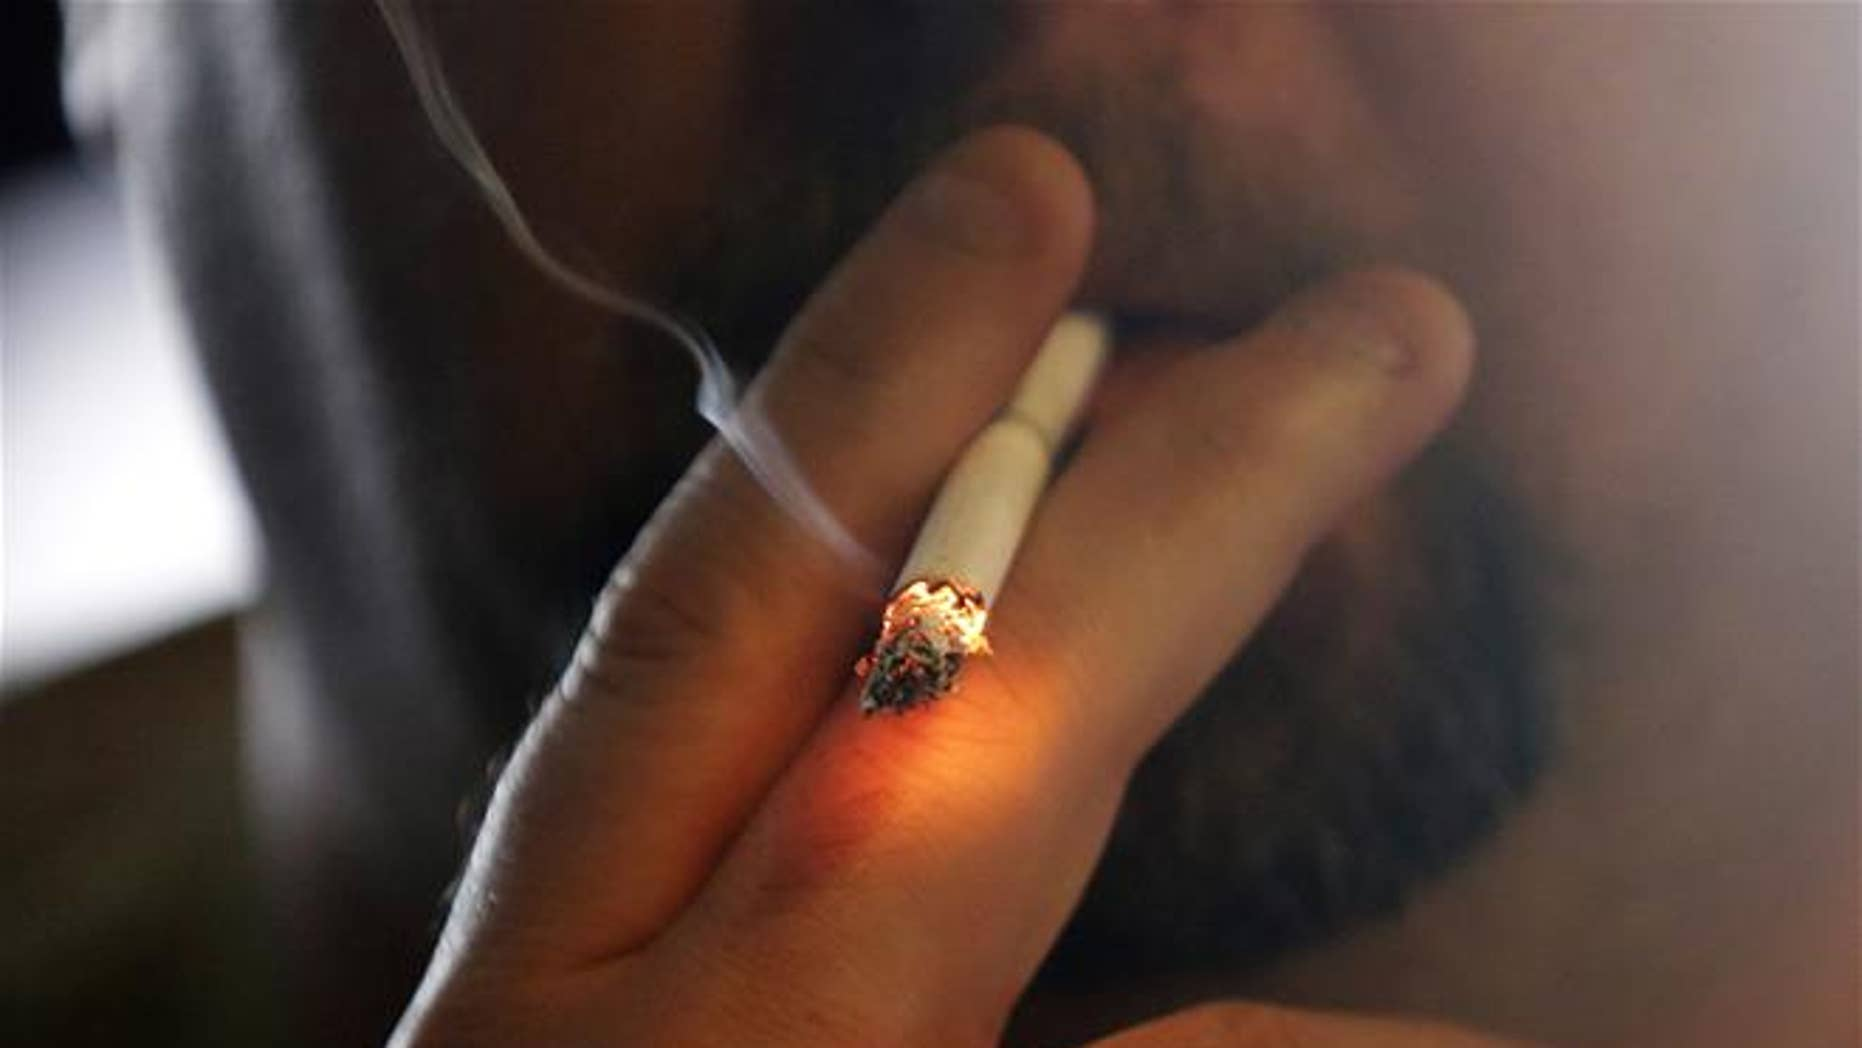 Kids of men who smoke may be born with a higher tolerance to drugs, even life-saving ones.